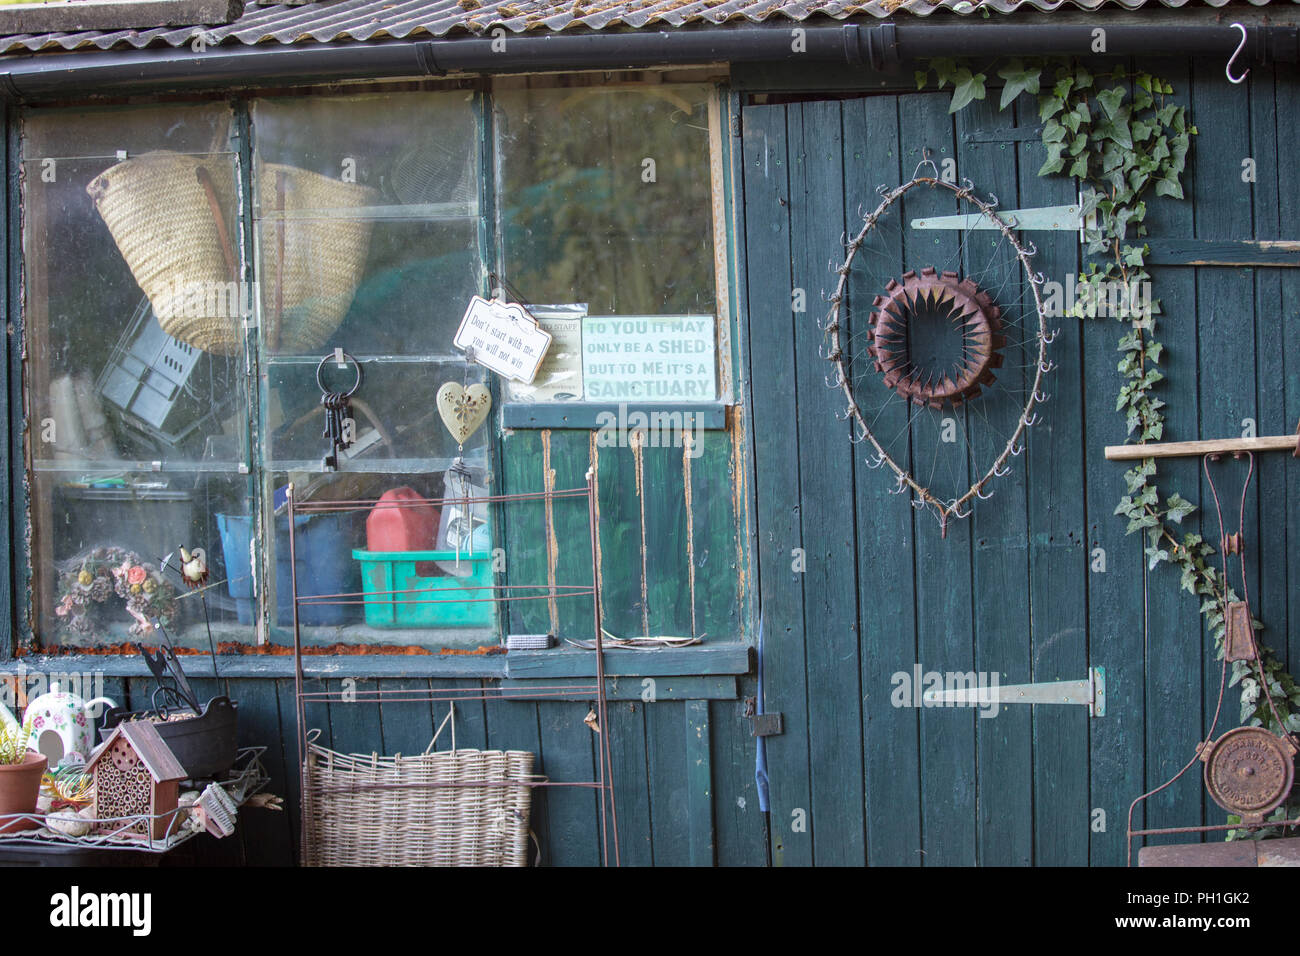 Shed on allotment Mill Hill, London, UK, with interesting and creative artefacts artifacts  and other objects, to be physical active and outside. - Stock Image